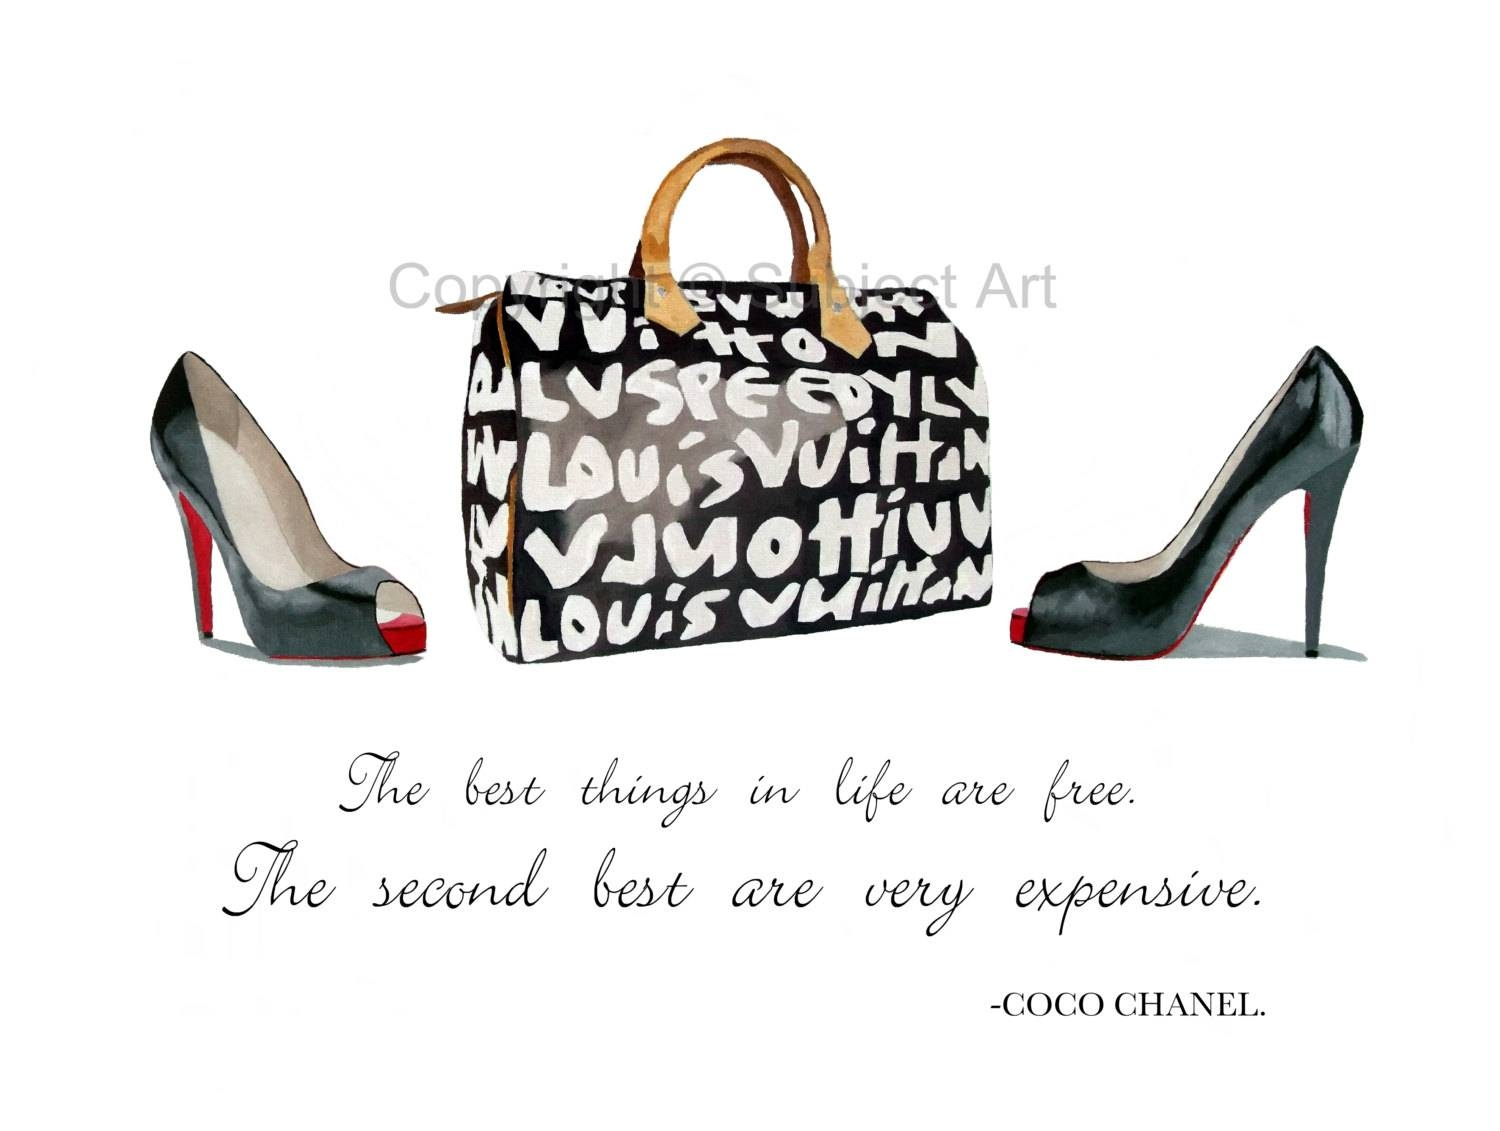 Art Print Of Christian Louboutin Black Shoes Louis Vuitton Regarding 2018 Coco Chanel Quotes Framed Wall Art (View 1 of 30)